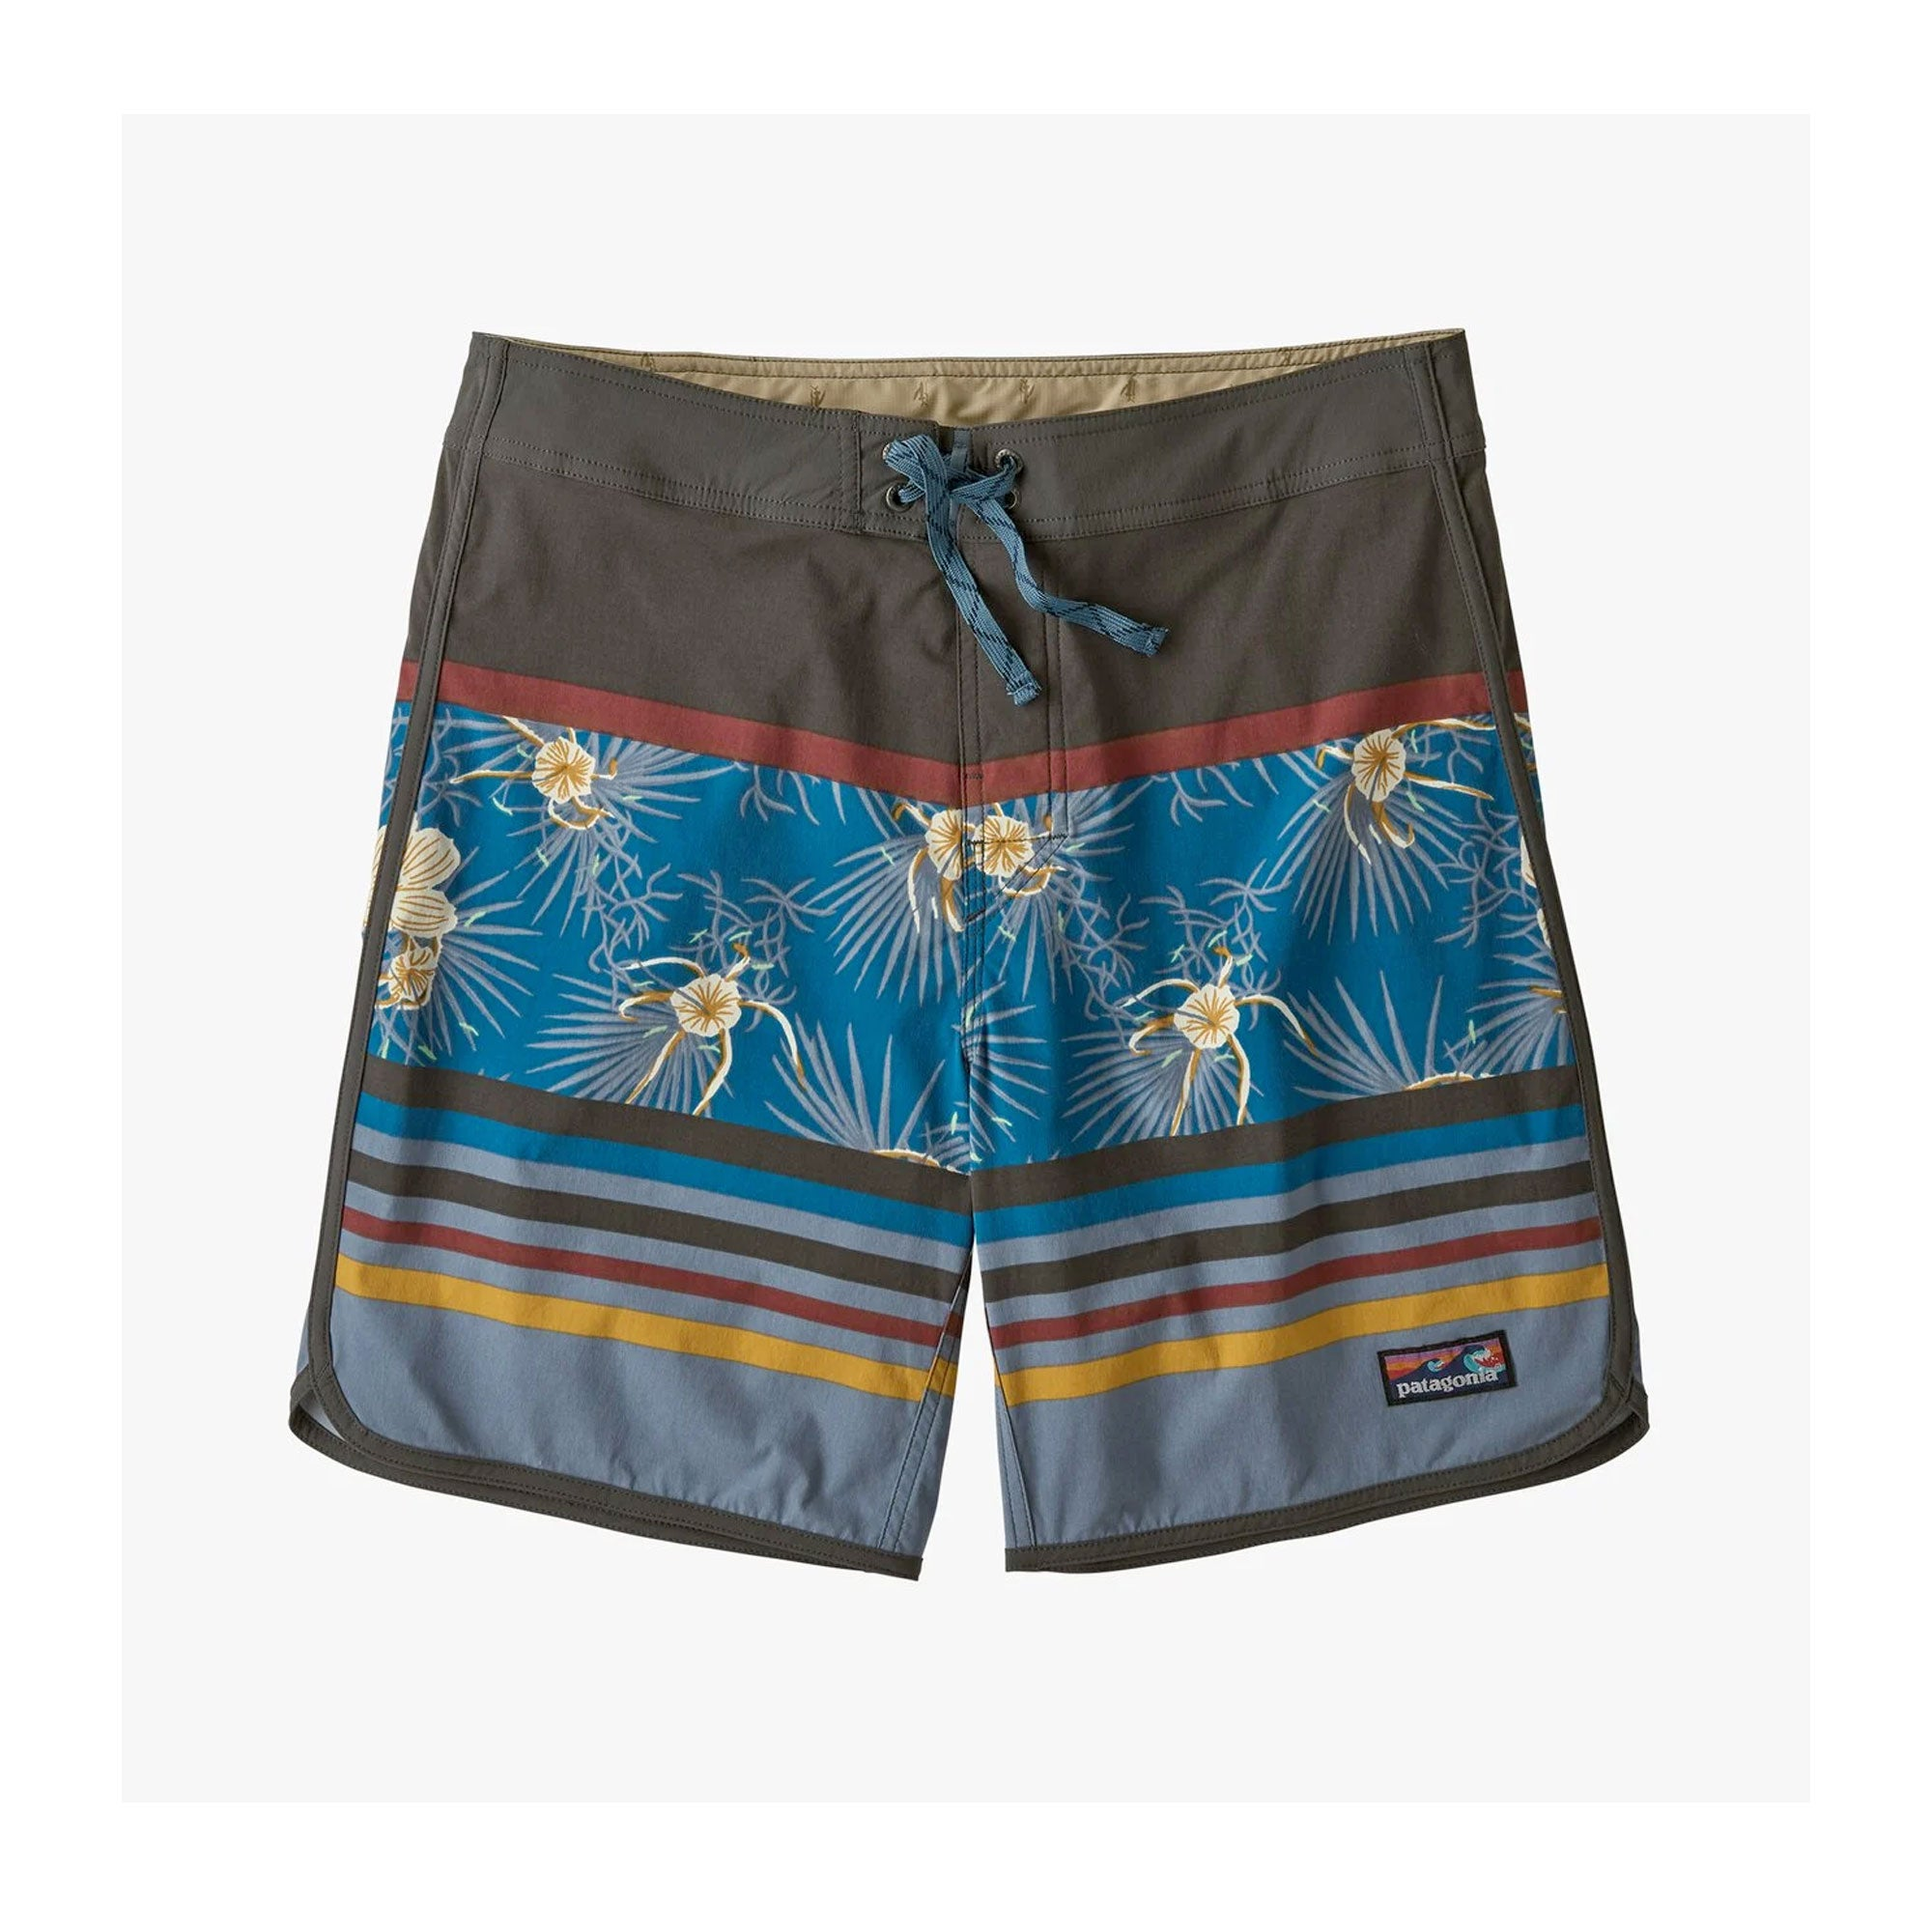 Patagonia Scallop Hem Stretch Wavefarer Men's Boardshorts